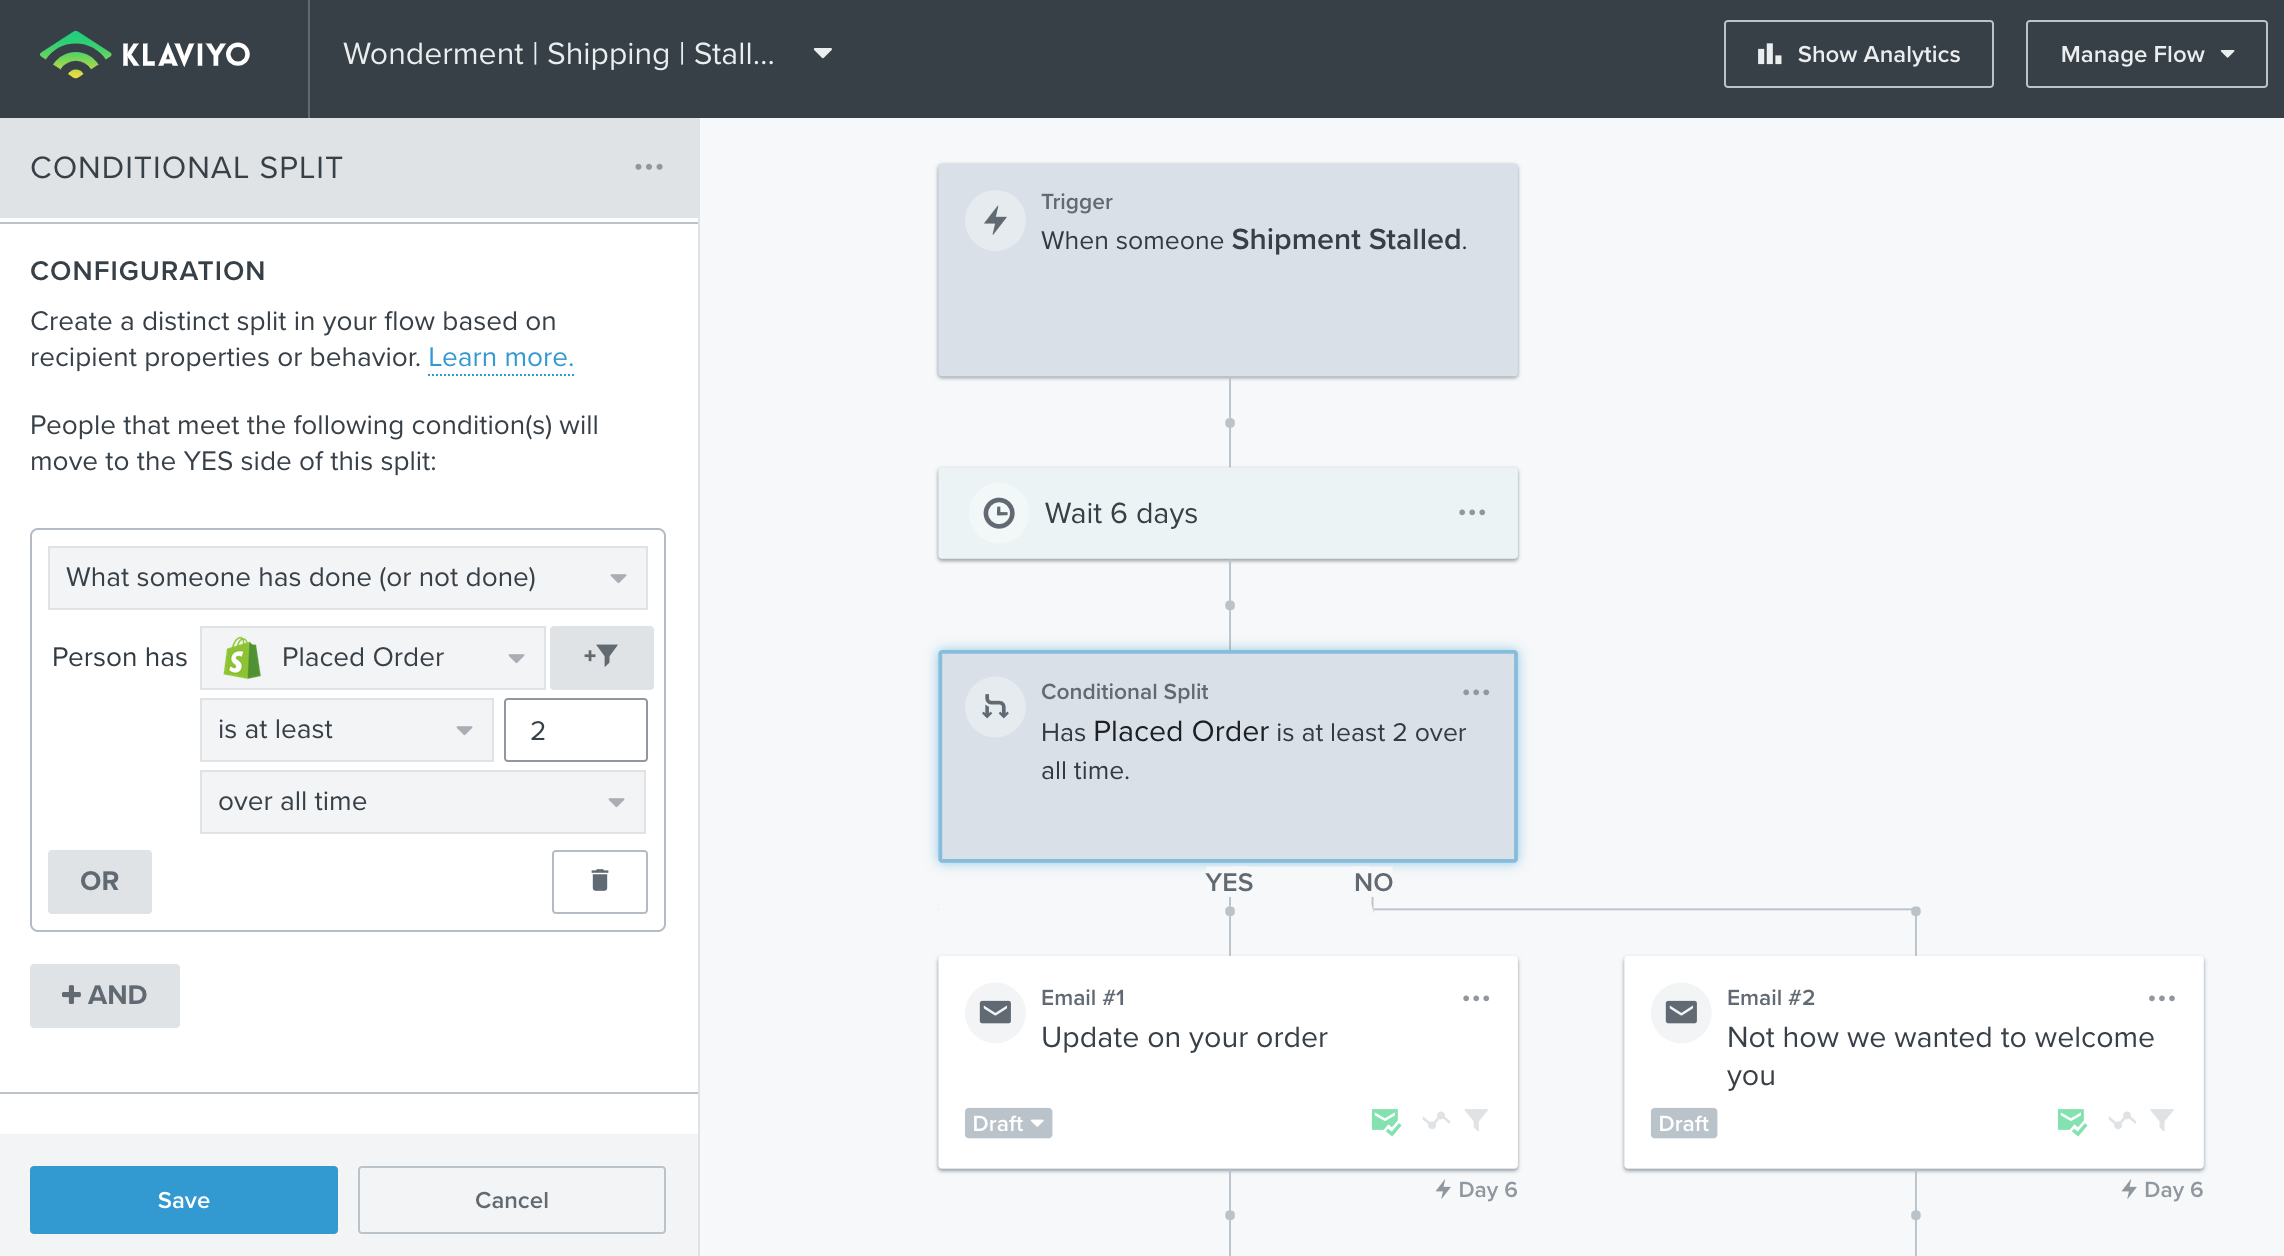 How To Guide: Setting Up Wonderment + Klaviyo Shipping Notification Flows